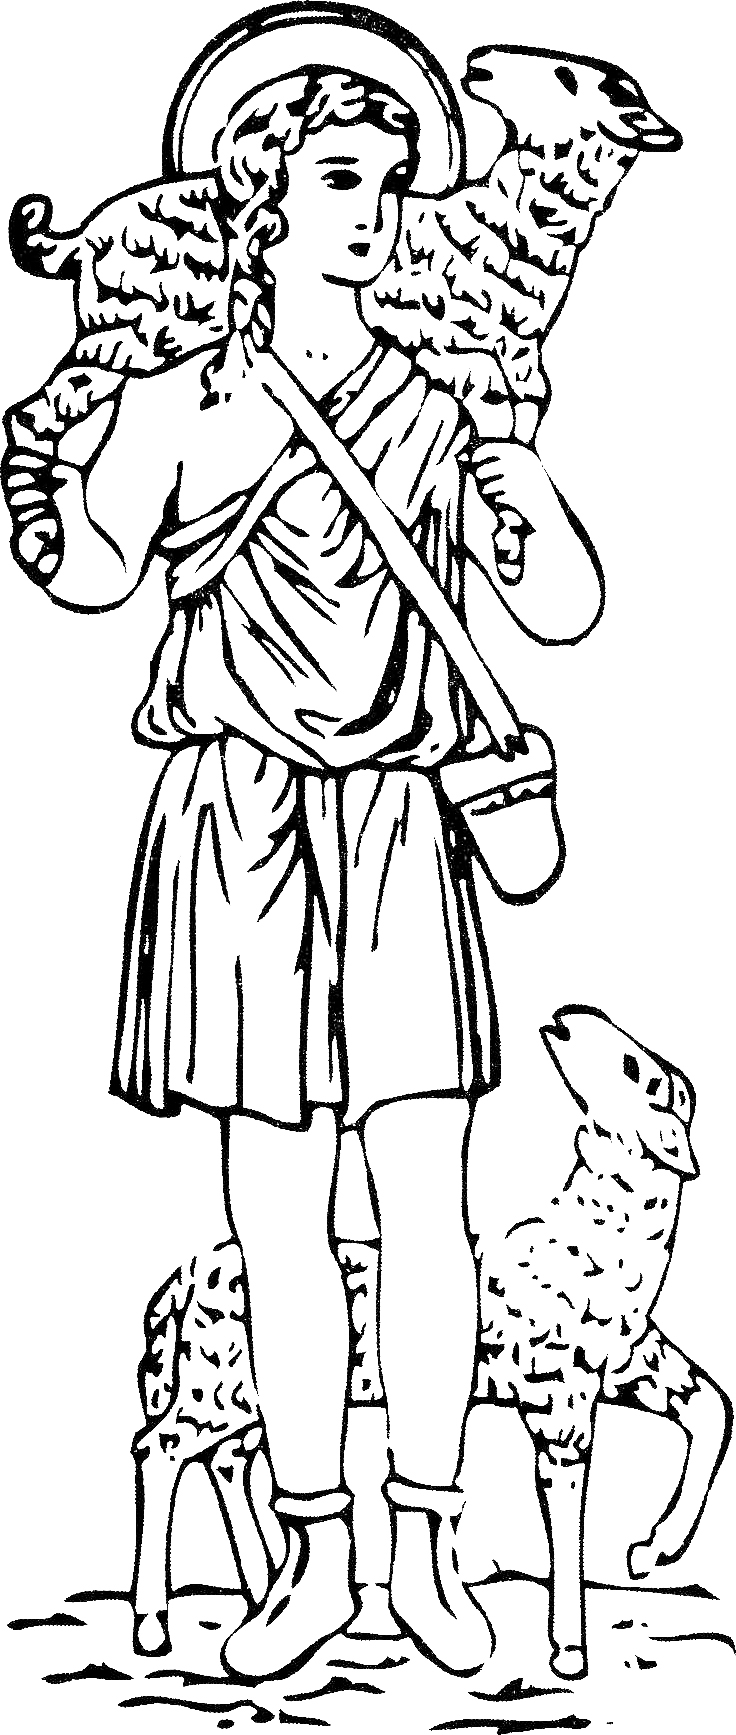 Catechesis of the Good Shepherd St.Anthony/All Saints